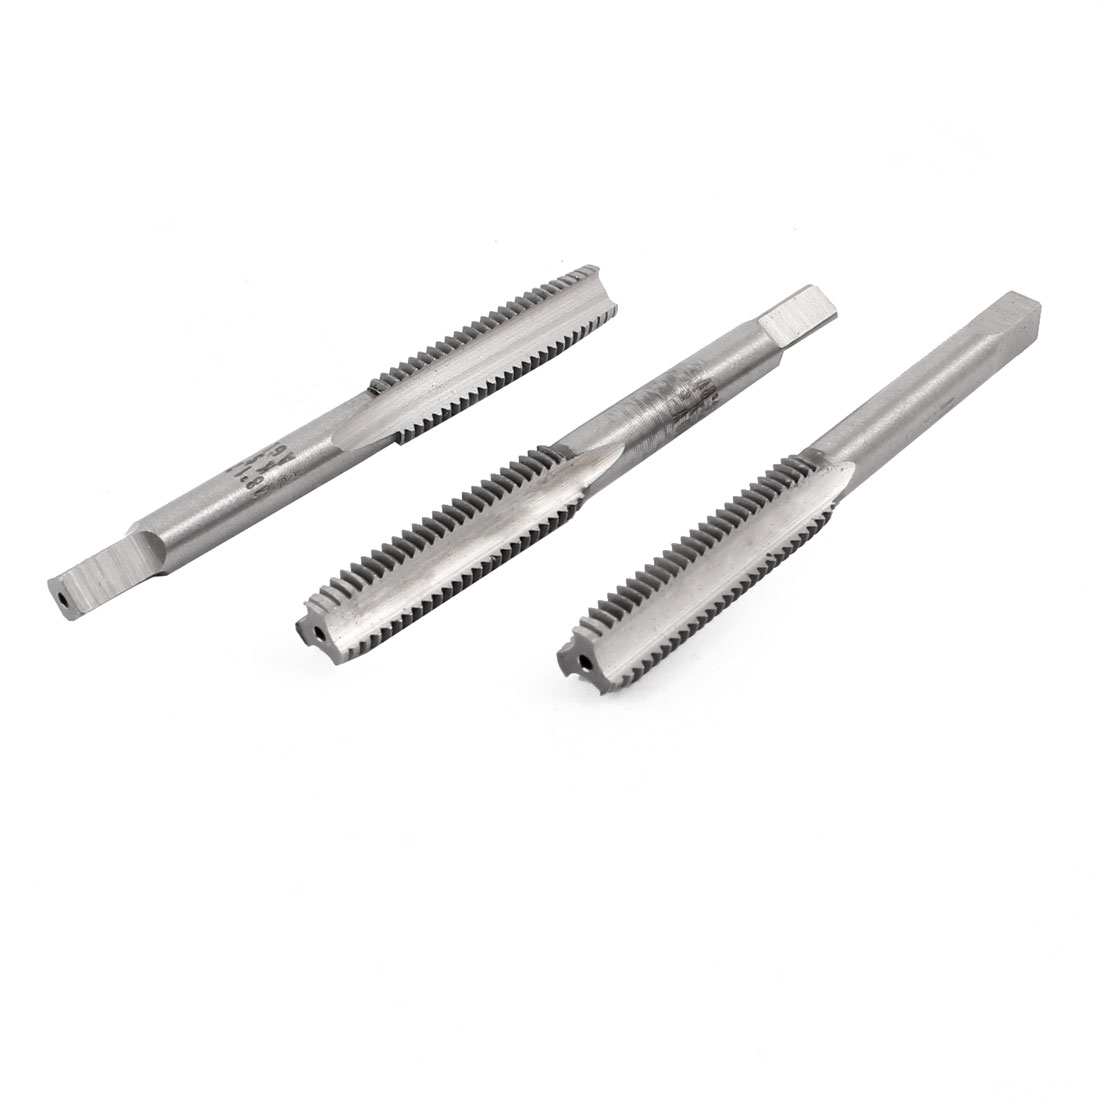 3 Pcs 6.5mm x 1.5mm Taper and Plug Metric Tap M6.5 x 1.5mm Pitch